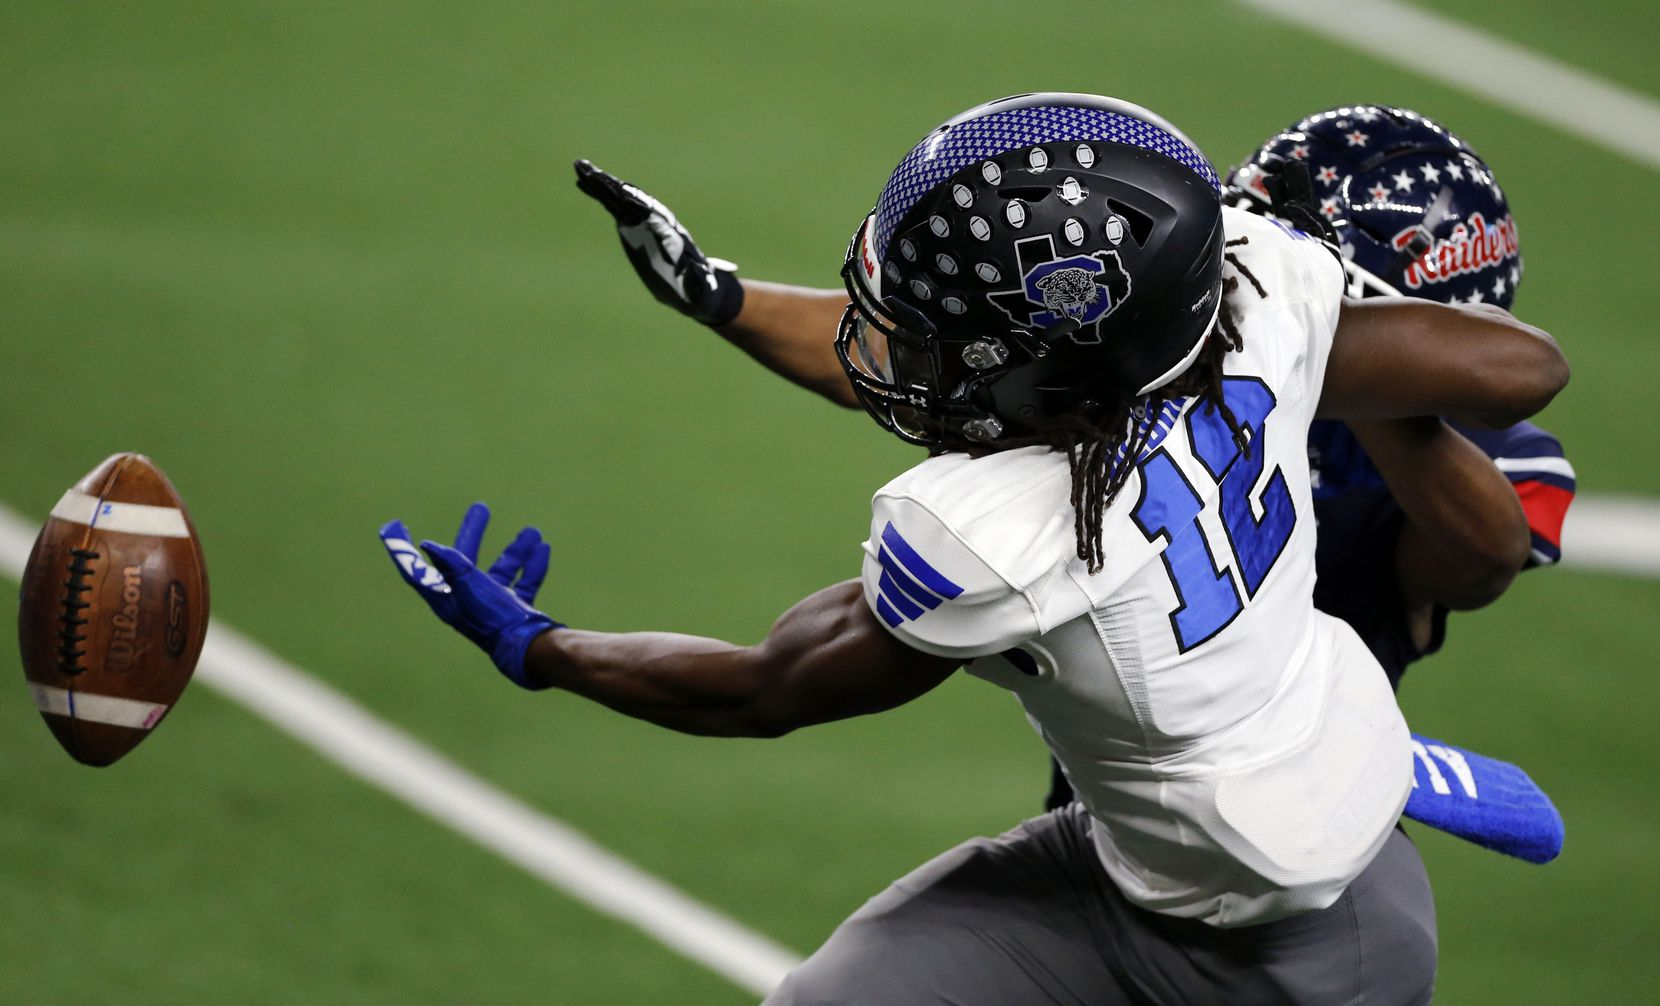 Mansfield Summit's Asa Aldridge (12) can't get to a pass during the first half of the Class 5A Division I state semifinal football playoff game against the Denton Ryan at AT&T Stadium in Arlington on Friday, January 8, 2021. (John F. Rhodes / Special Contributor)